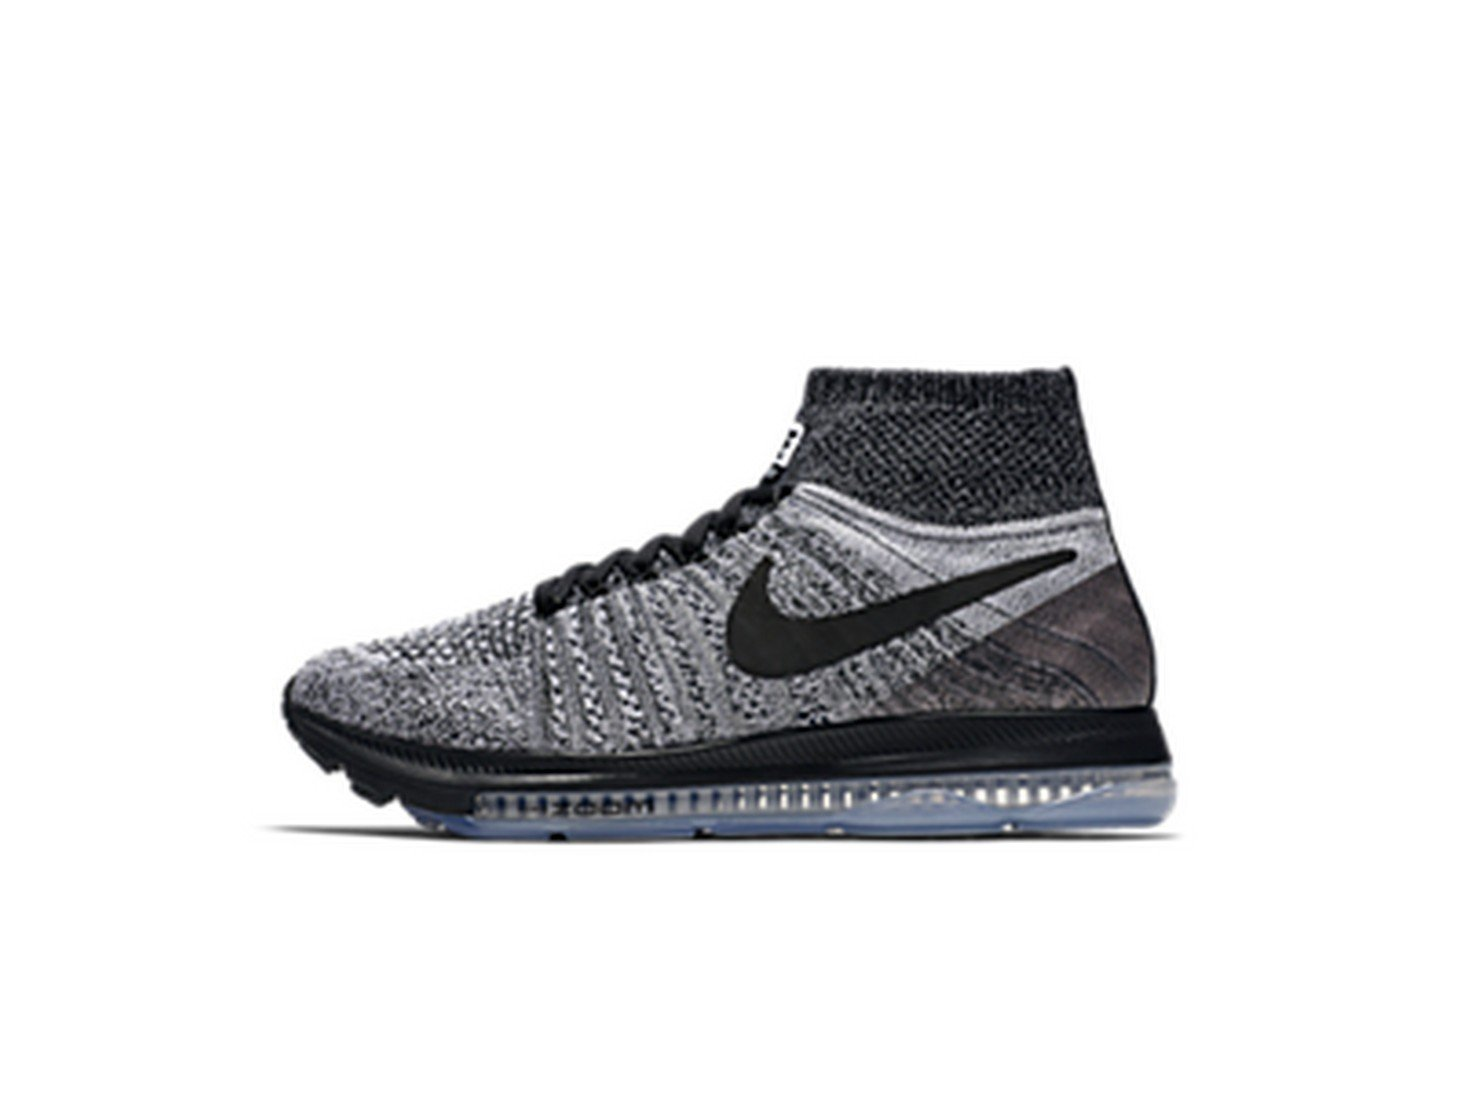 Nike Women's Zoom All Out Flyknit Running Shoes B071WL6223 6.5 B(M) US|Grey/ Black